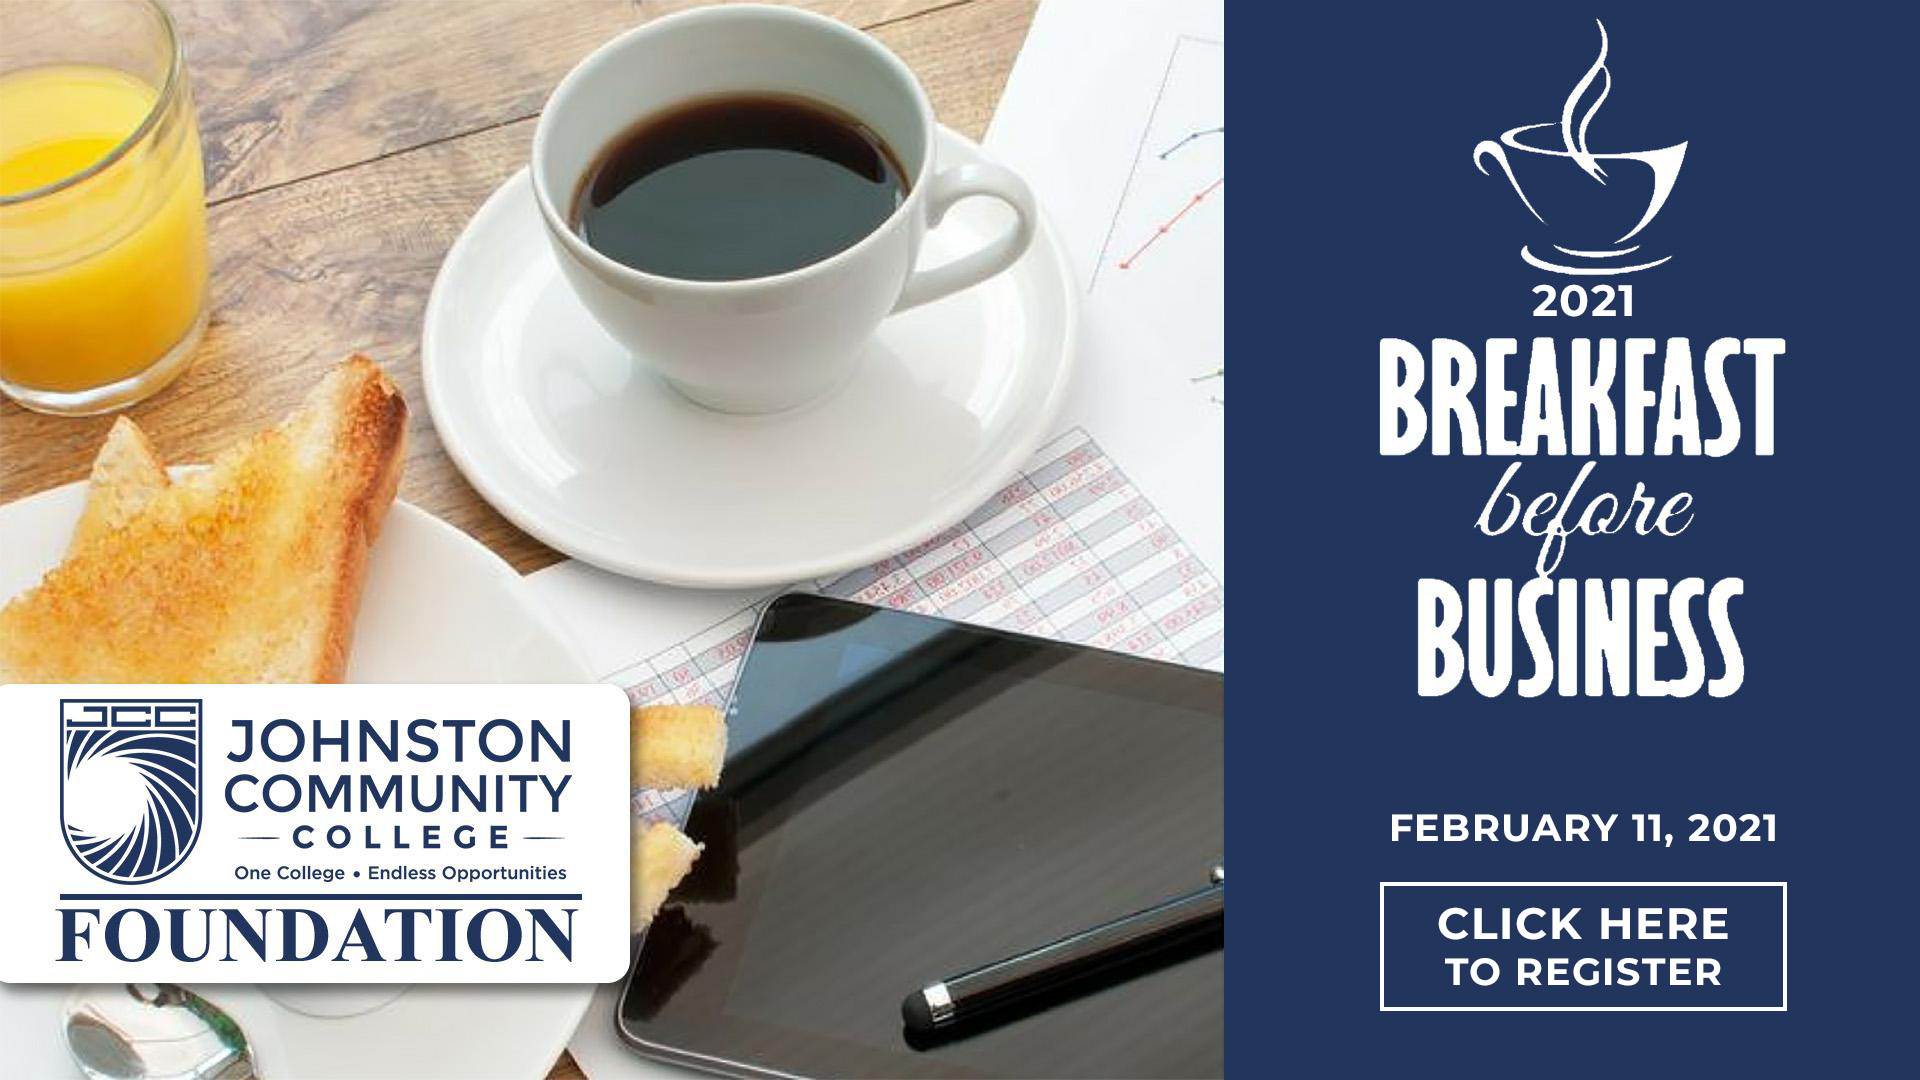 2021 Breakfast Before Business. Click here to register.